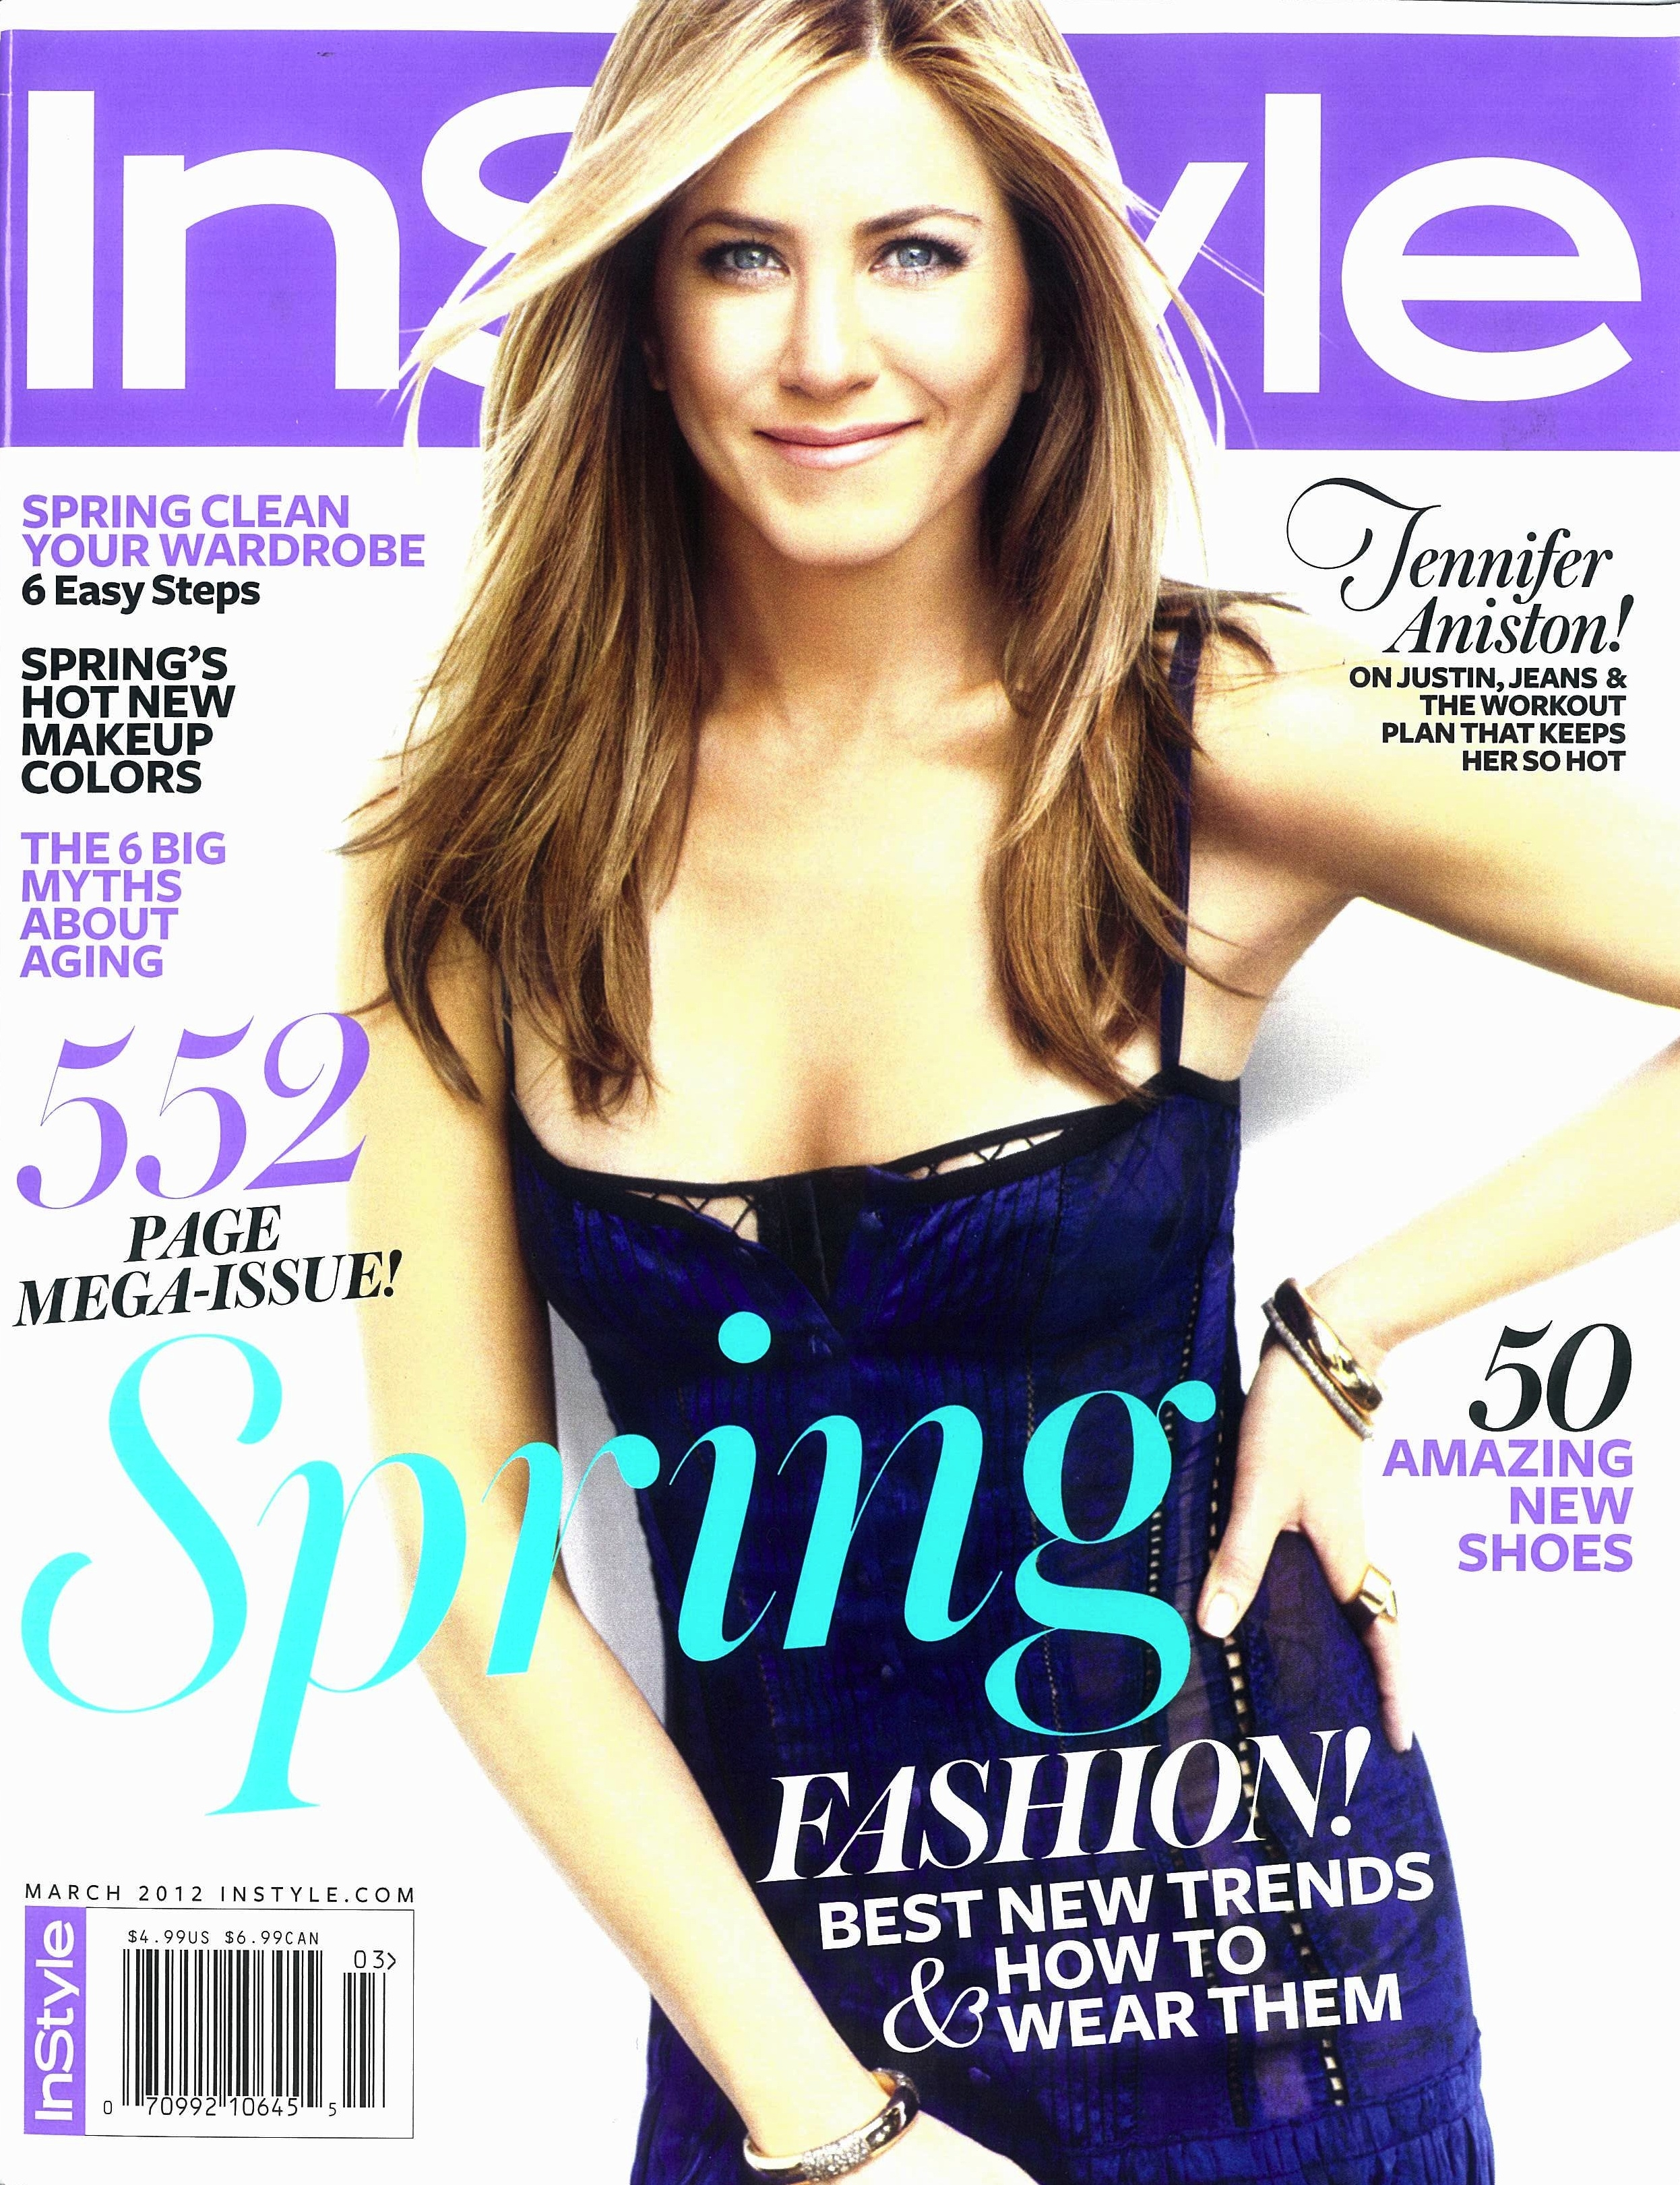 spotted jennifer aniston wears pomellato to instyle magazine photoshoot hamilton jewelers. Black Bedroom Furniture Sets. Home Design Ideas